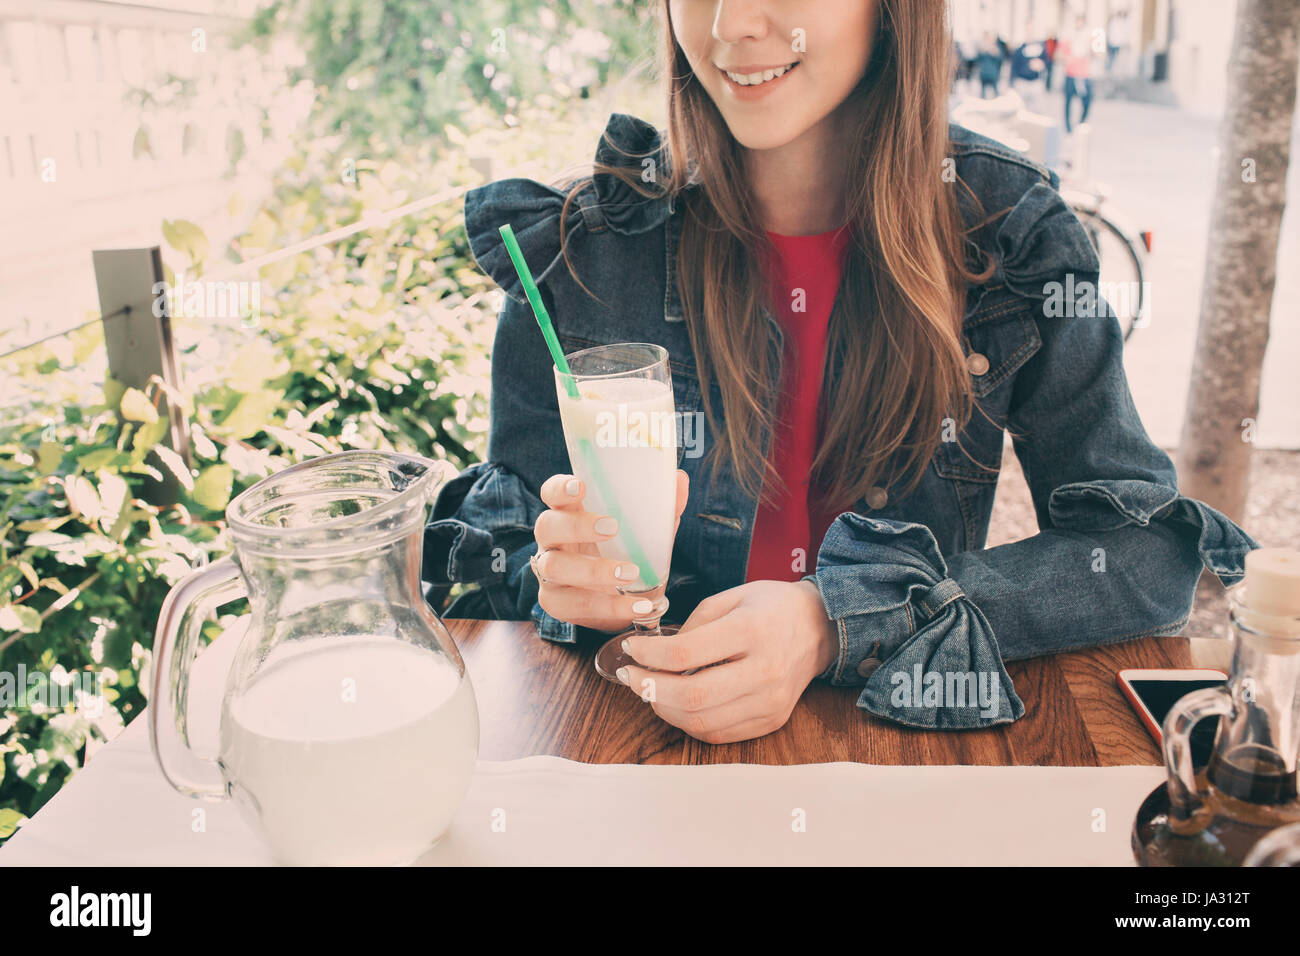 Young smiling girl drinking tasty sweet cocktail , amazing relaxing day, tasty lemonade, outdoor terrace. - Stock Image